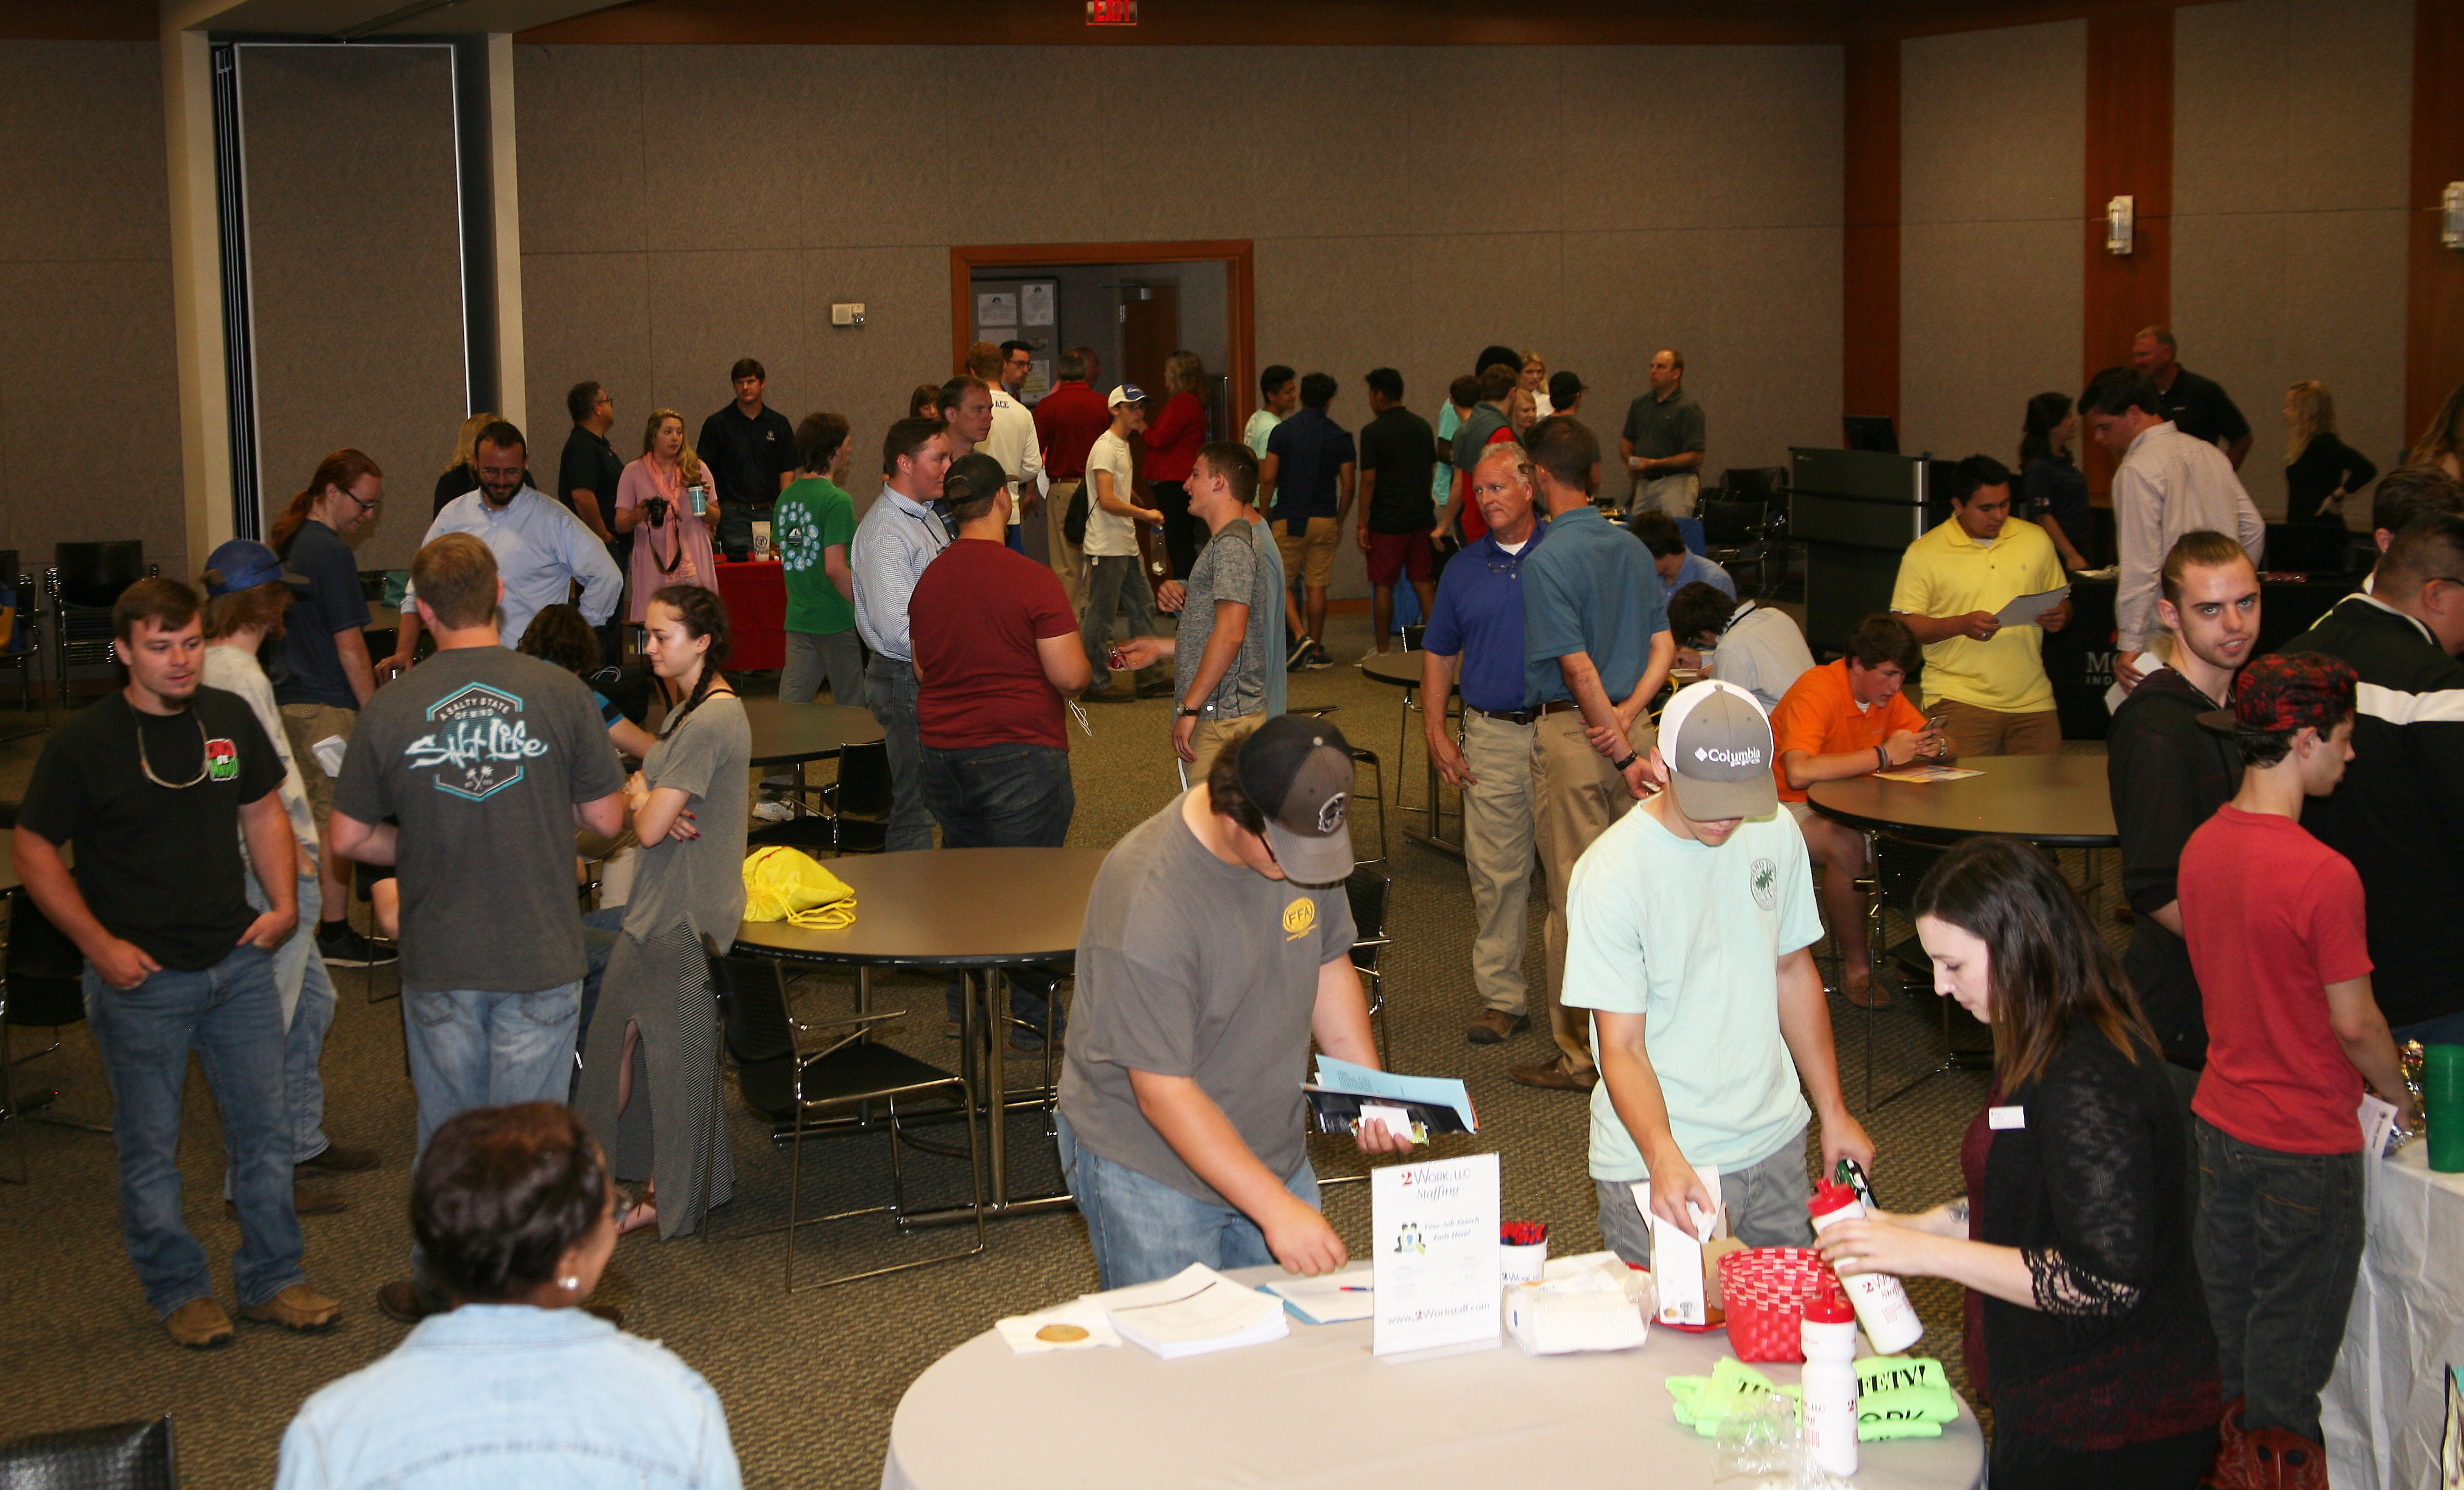 A Job Fair was held at GNTC's Floyd County Campus to showcase area employment opportunities in the manufacturing industry.